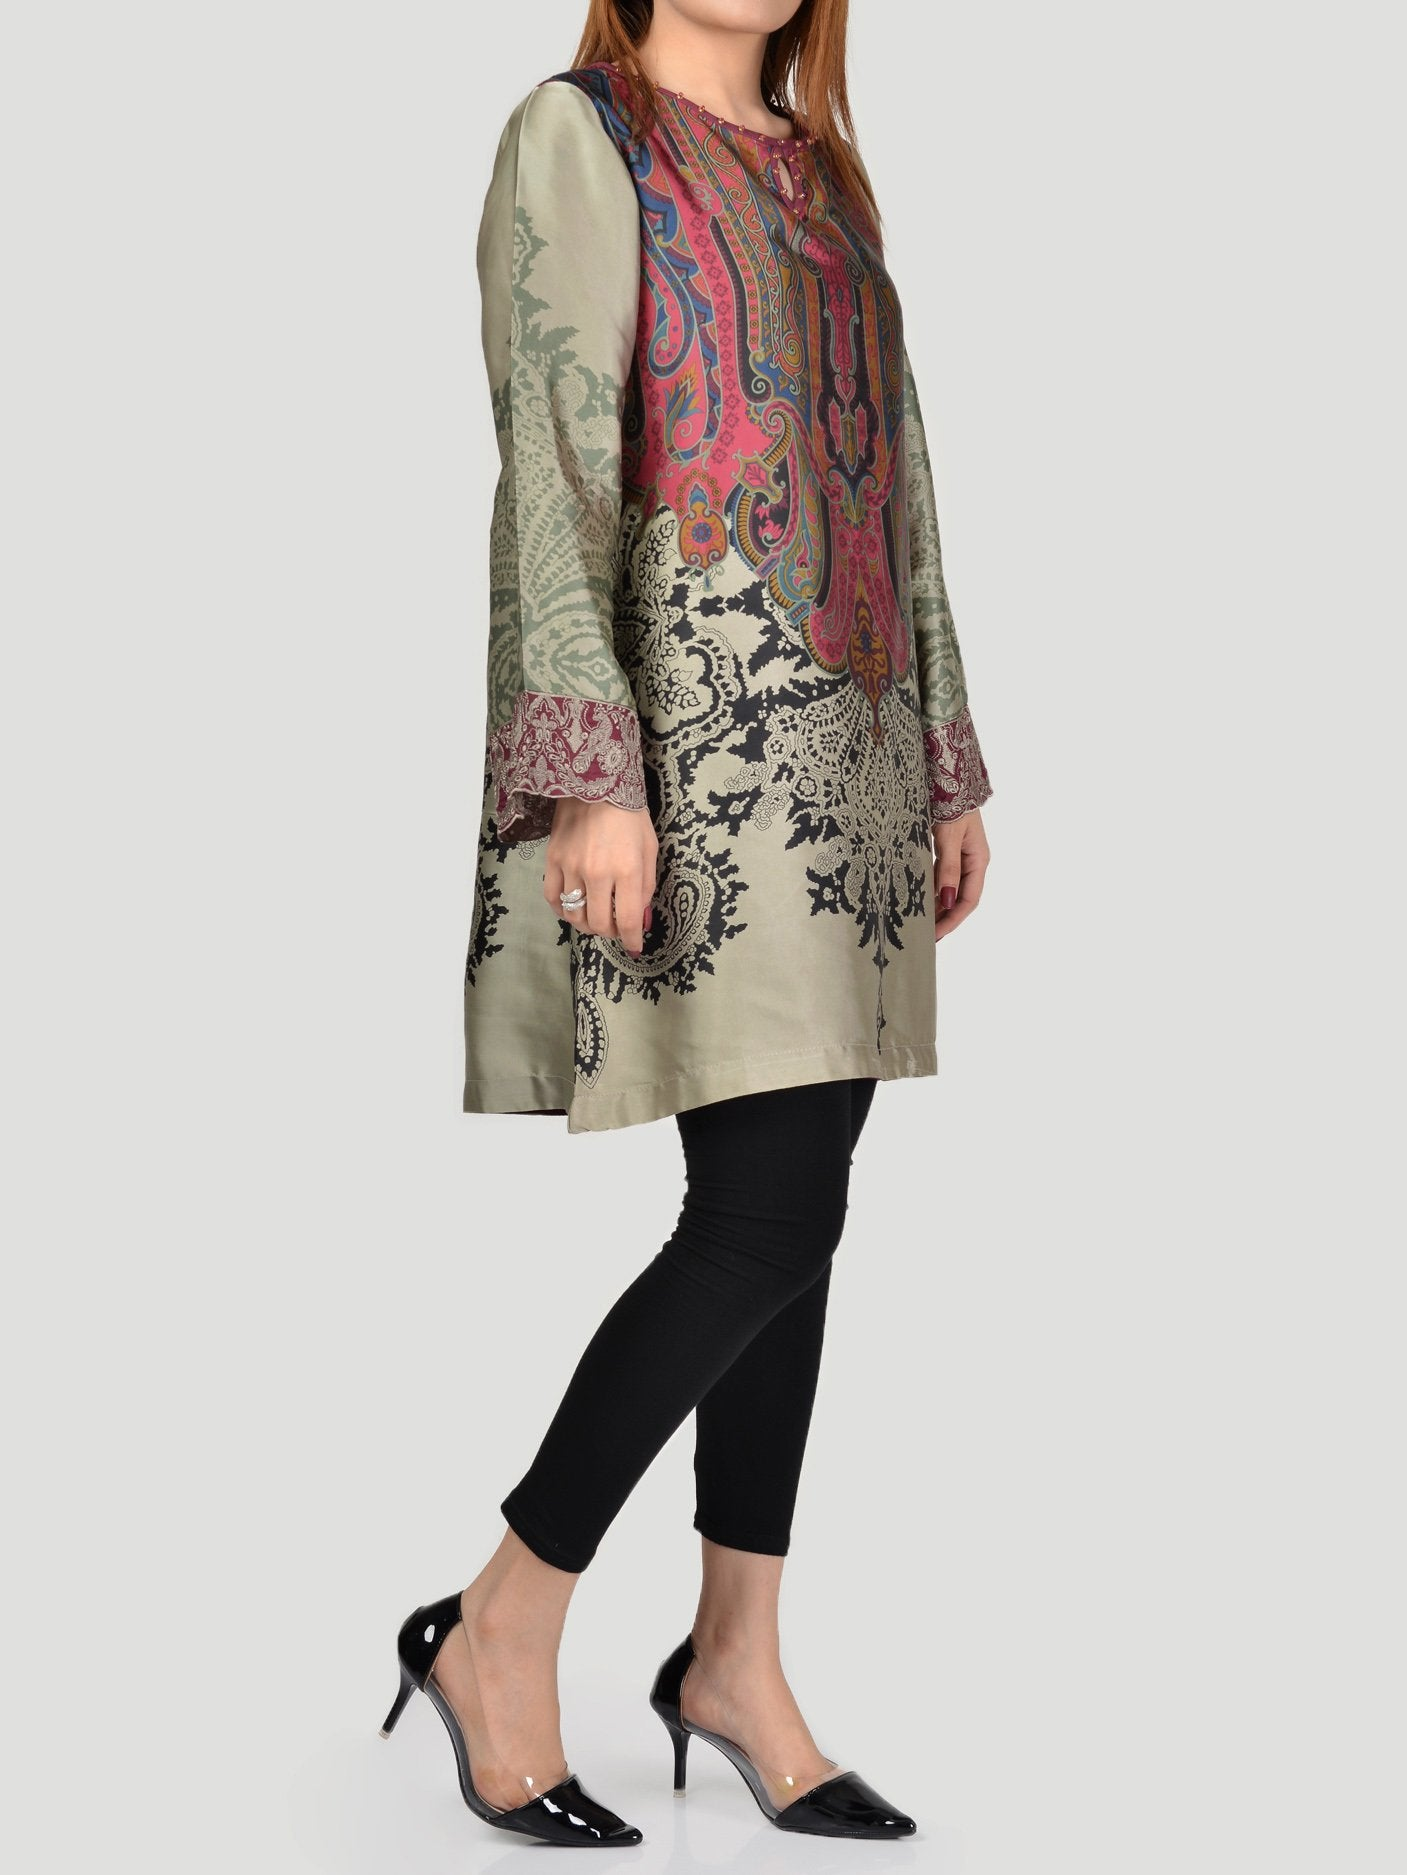 Embroidered Silk Shirt (F0189) by Limelight